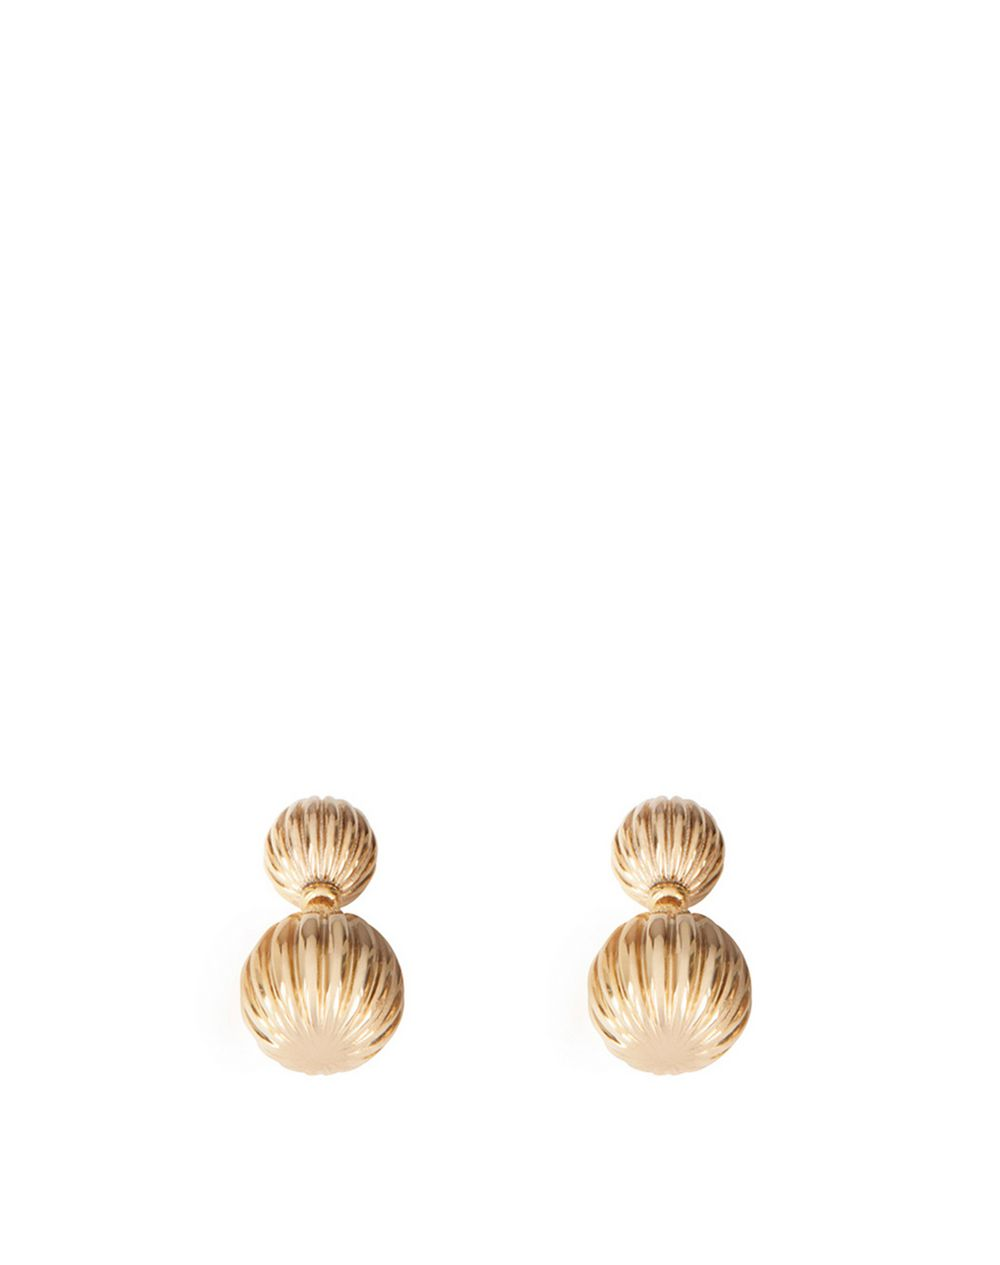 ARPÈGE STUD EARRINGS - Lanvin